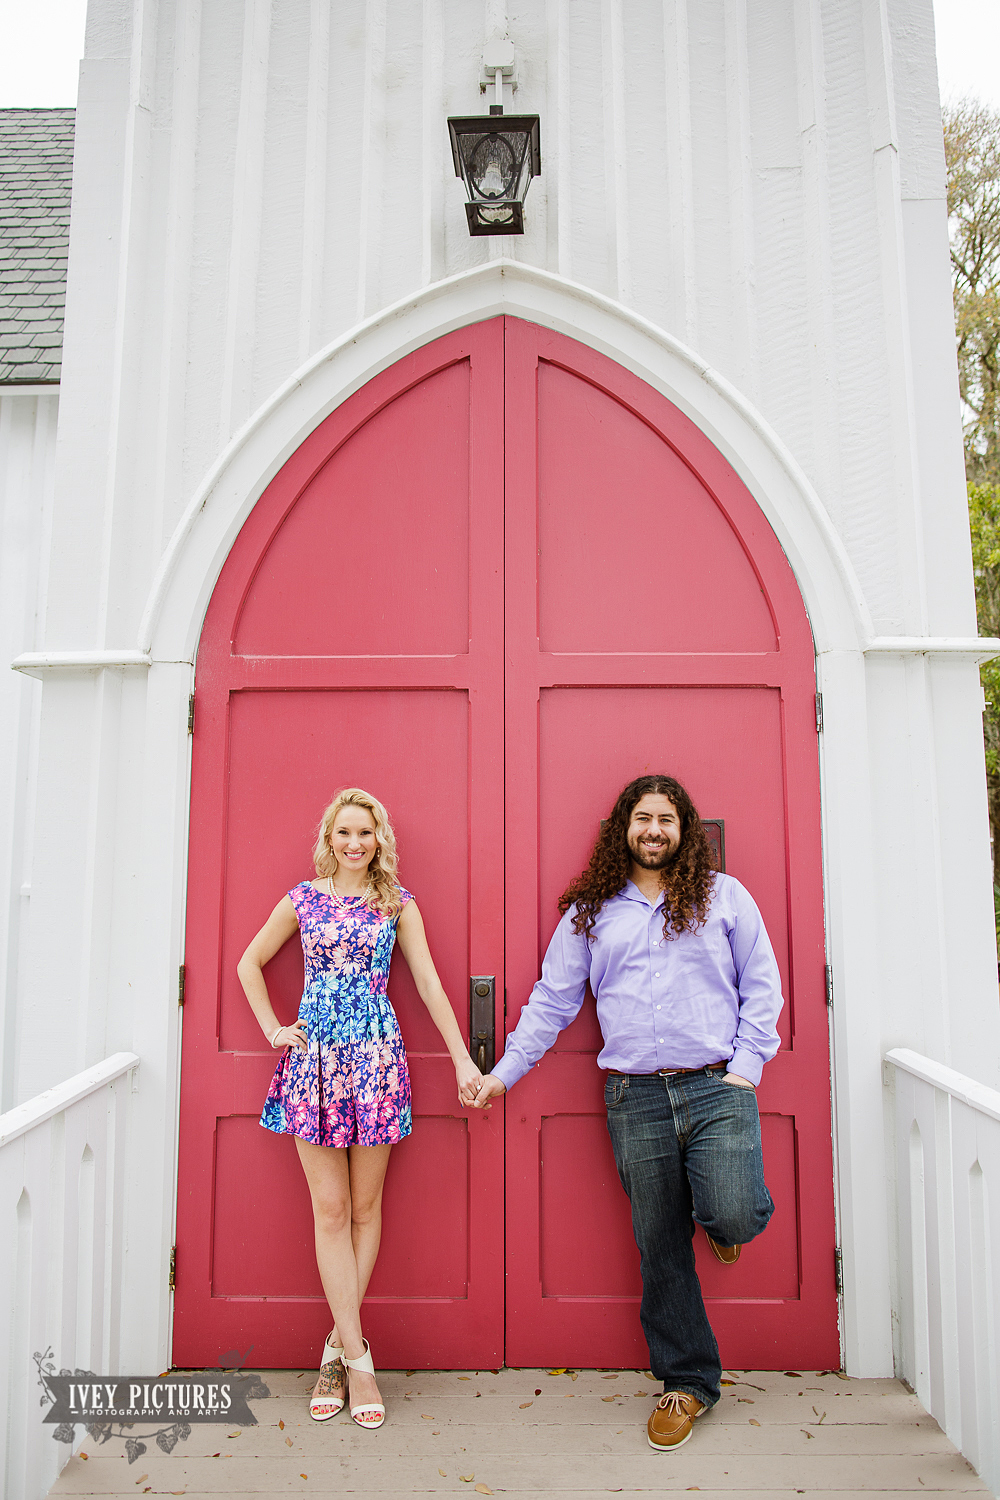 Engagement session at church